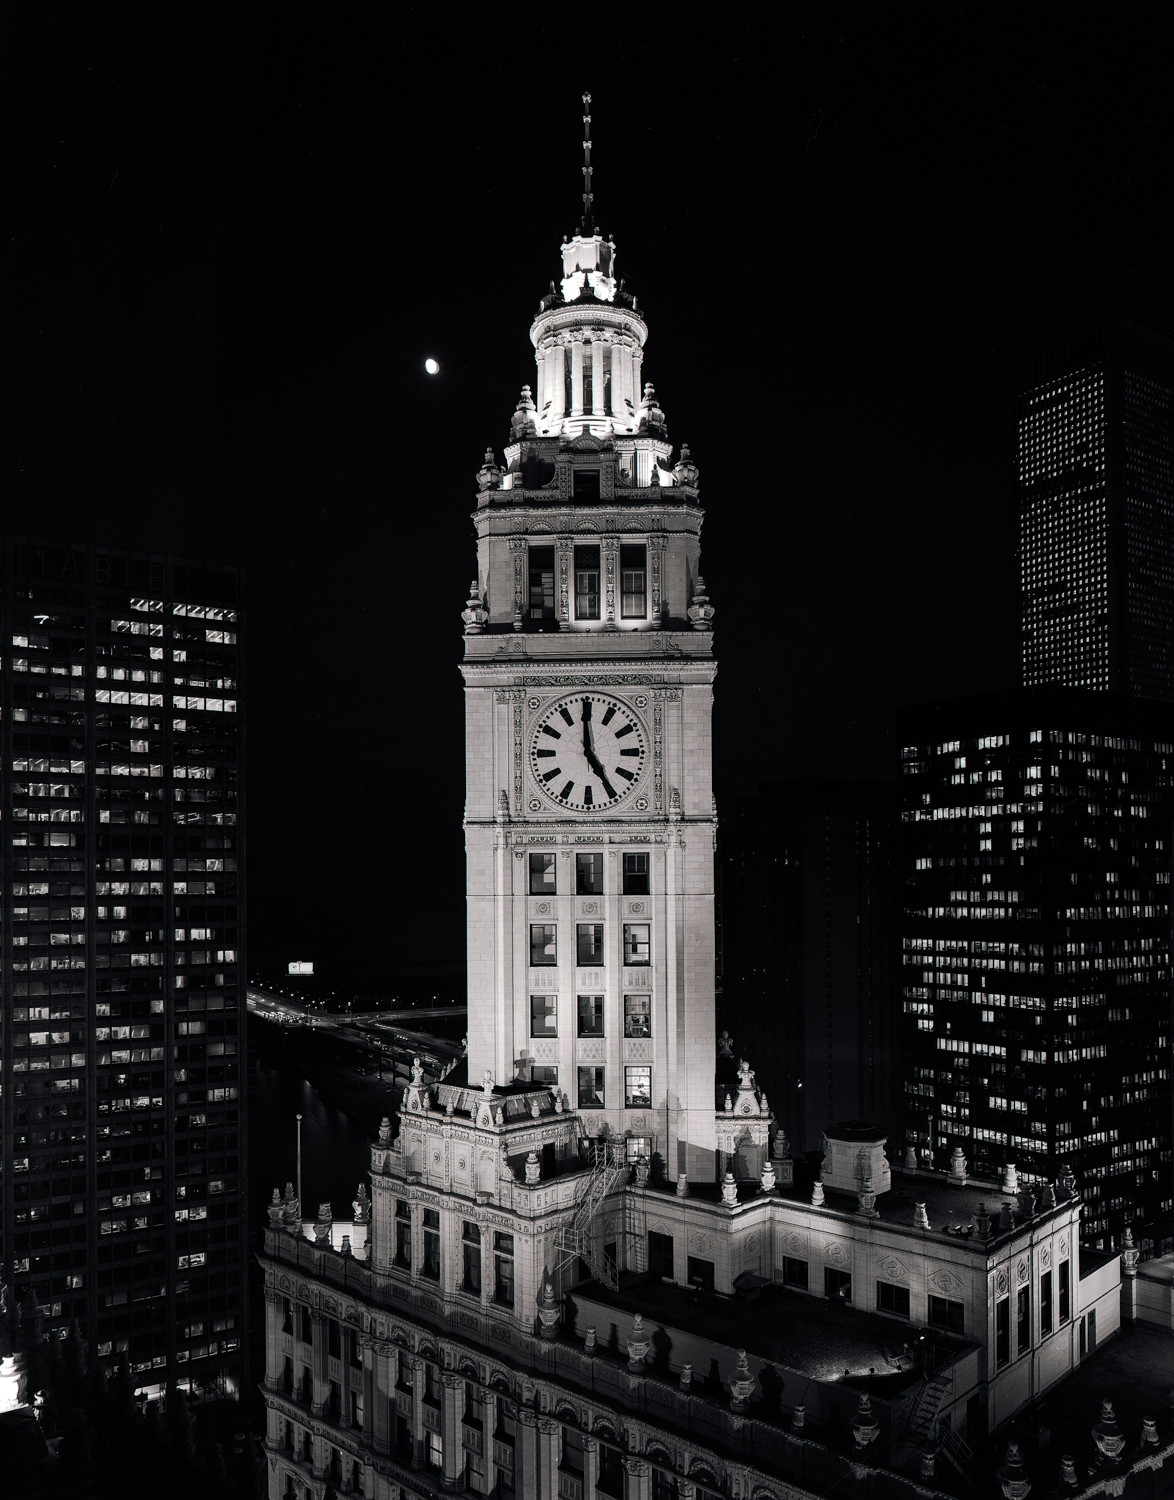 Wrigley Building at 5 pm ©1981